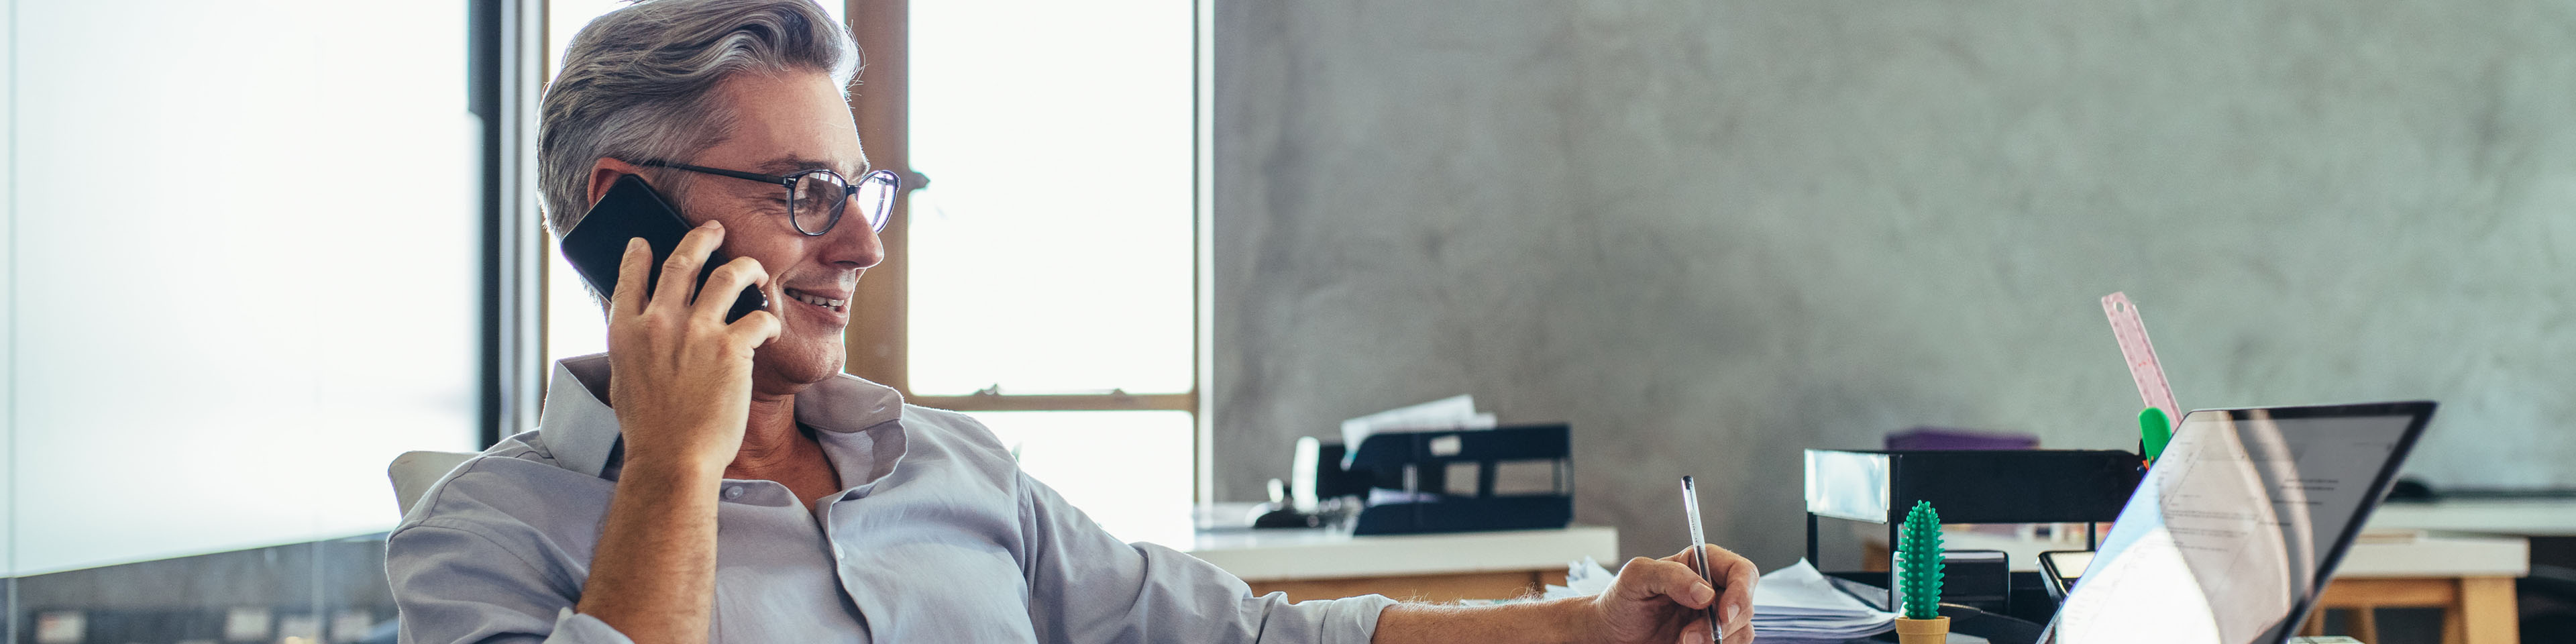 Businessman-in-office-talking-on-phone